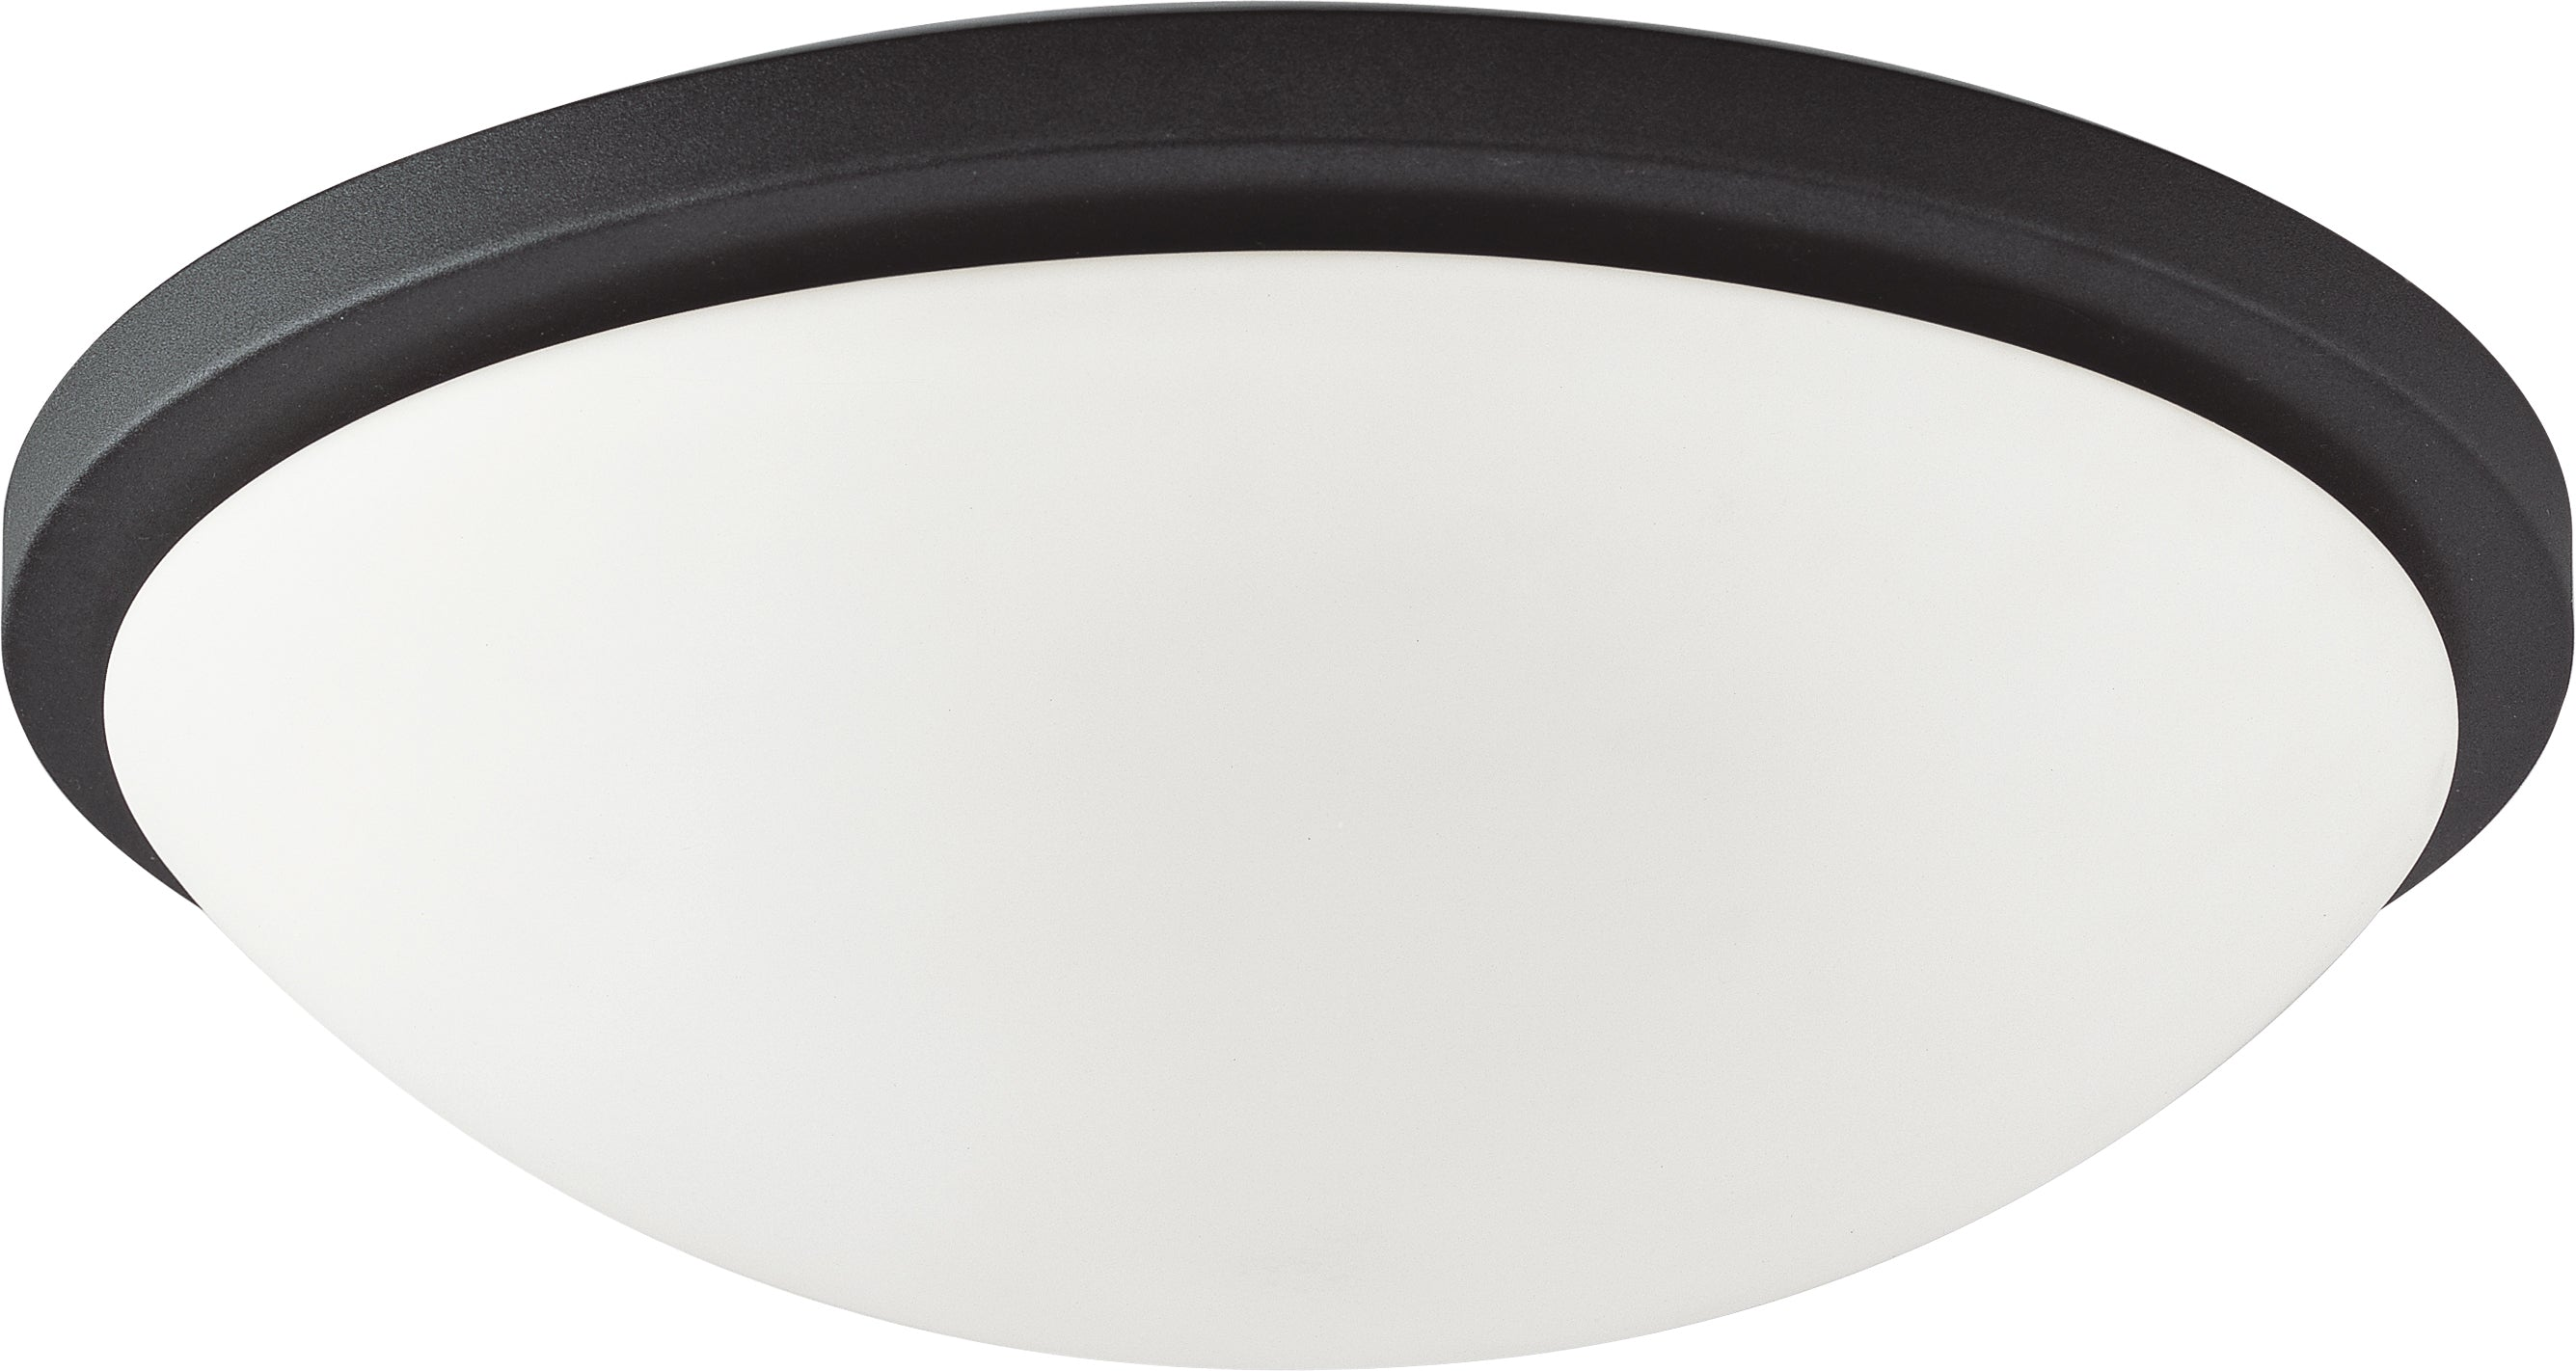 """Nuvo Button 18w 11"""" LED Flush Mount w/ Frosted Glass in Matte Black Finish"""